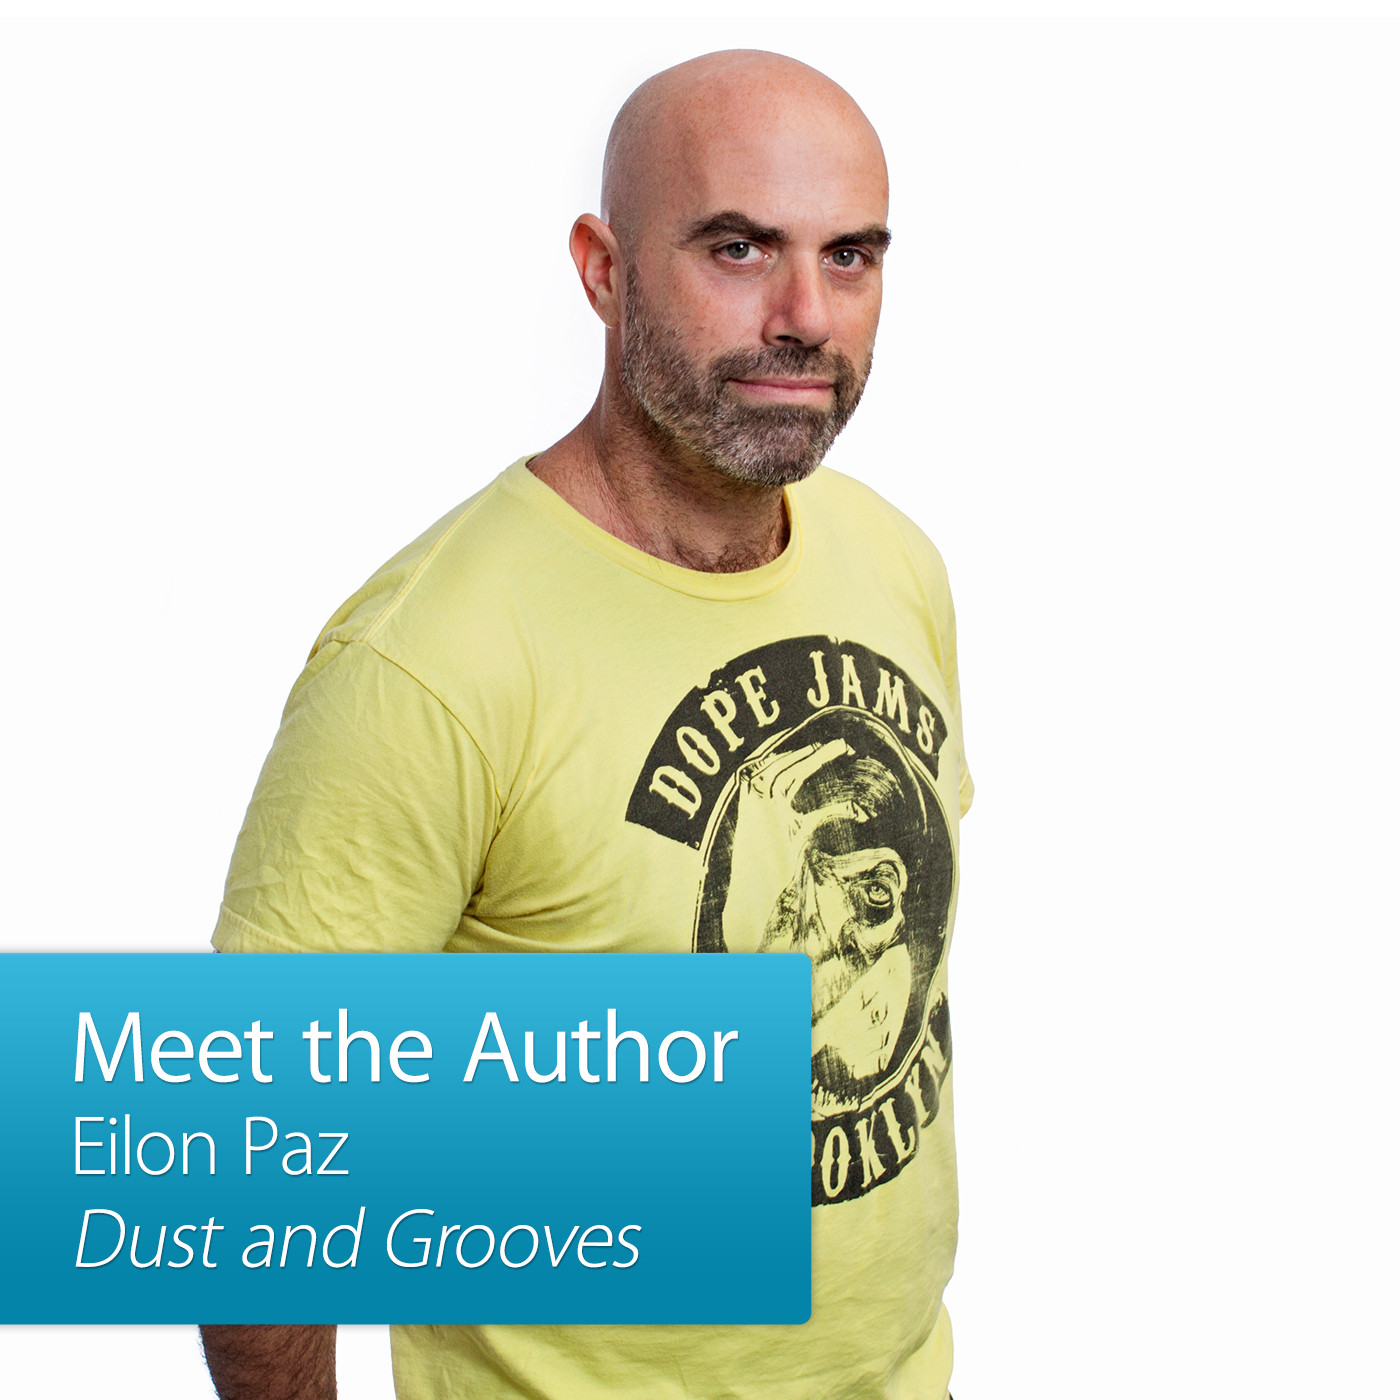 Eilon Paz: Meet the Author